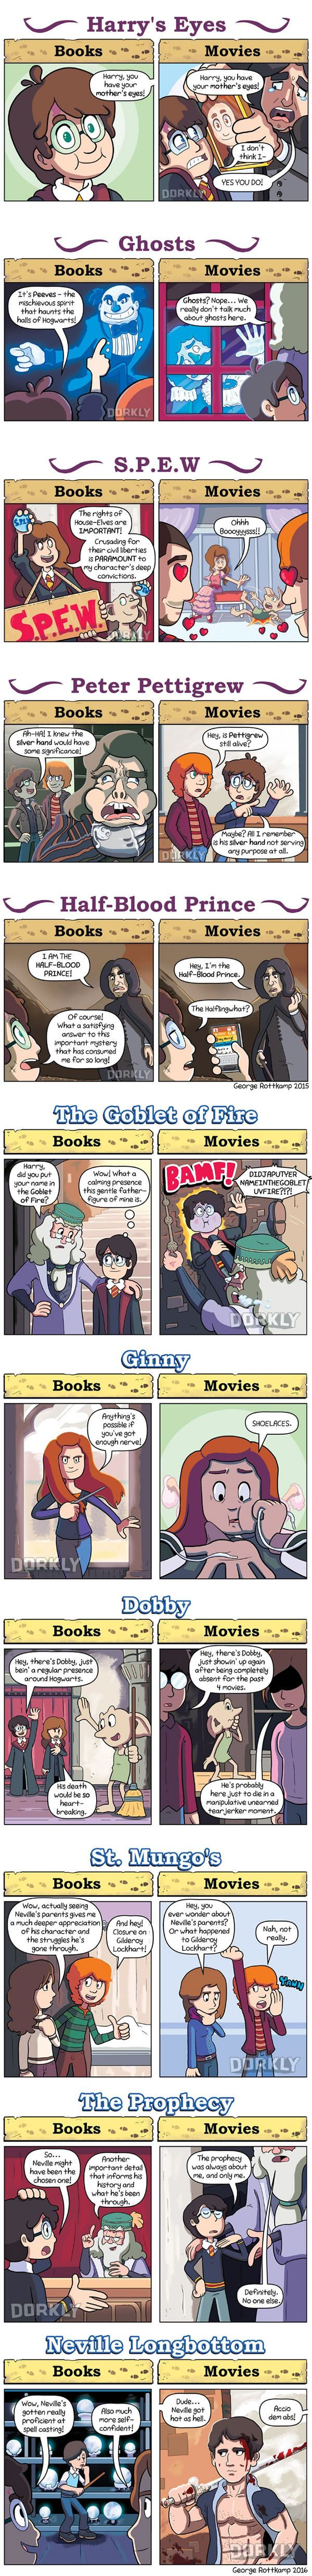 11 Ways Harry Potter Movies Are Different From The Books